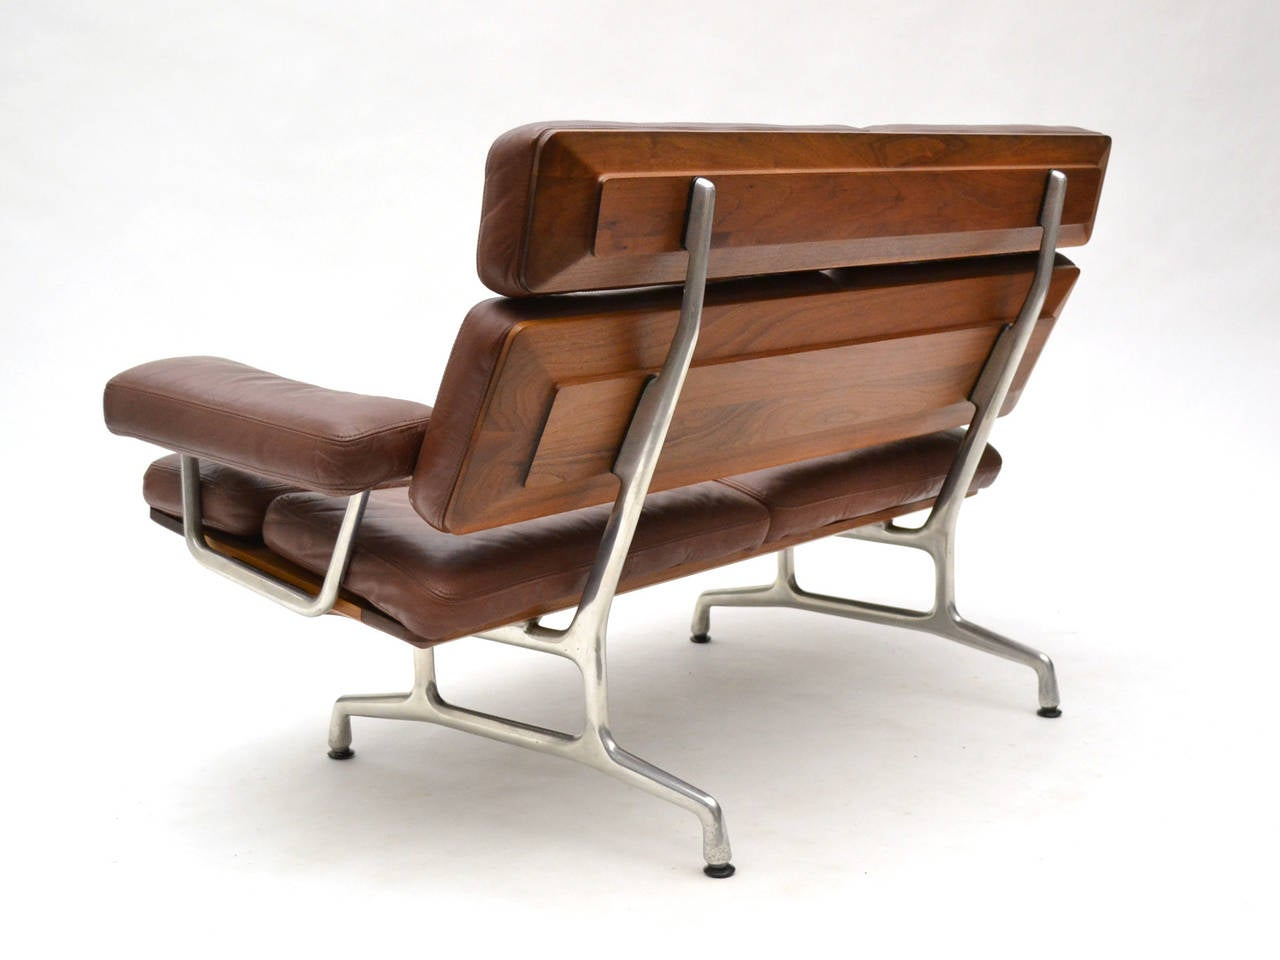 Mid Century Modern Eames Teak And Leather Sofa By Herman Miller For Sale